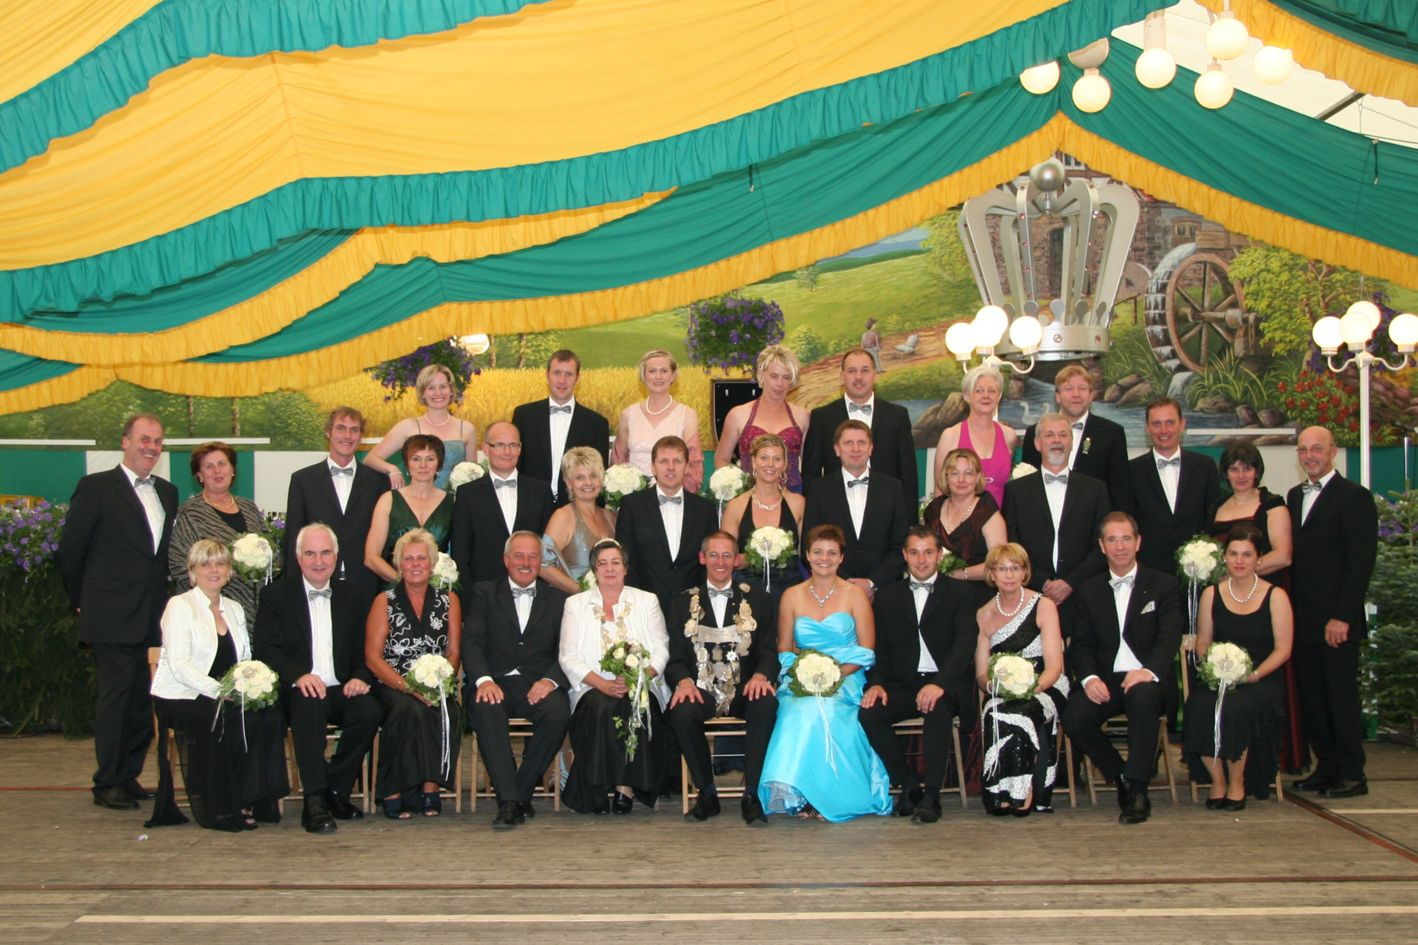 Throngemeinschaft 2011